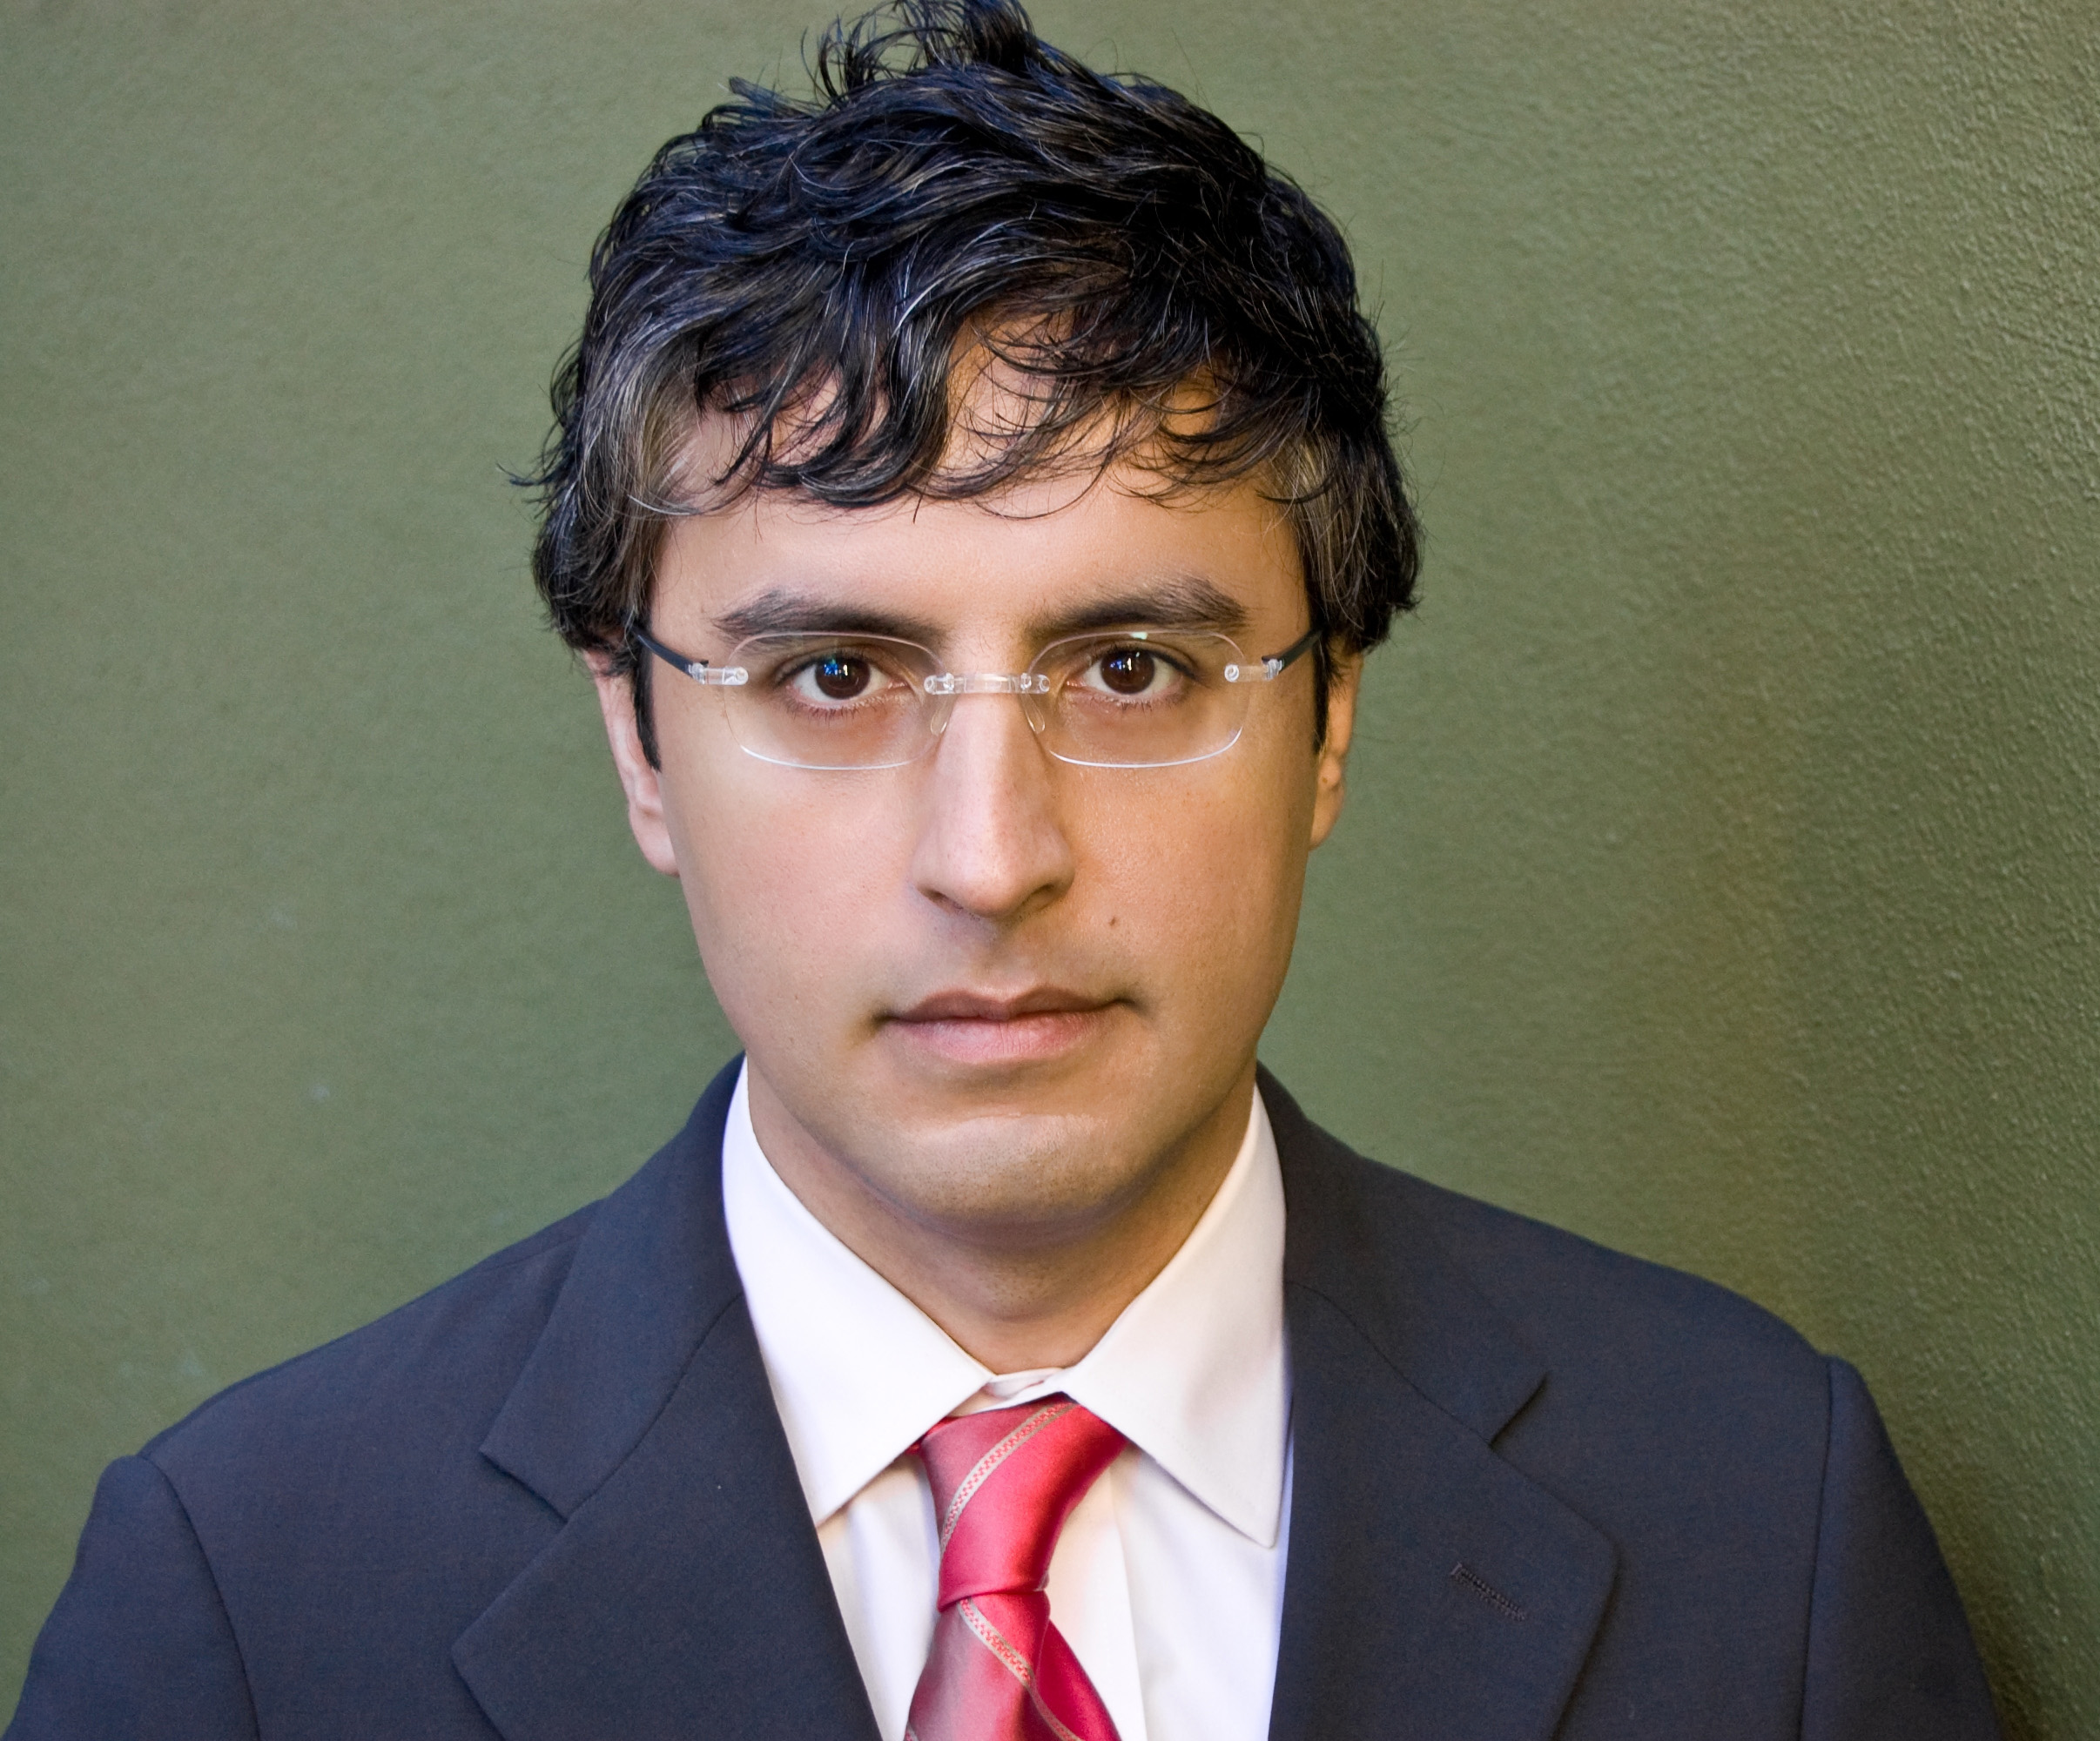 Acclaimed author Reza Aslan will give this year's Sterling M. McMurrin Lecture on Religion and Culture on Monday, Oct. 25 at 7 p.m. in the Salt Lake City Main Library's Nancy Tessman auditorium.